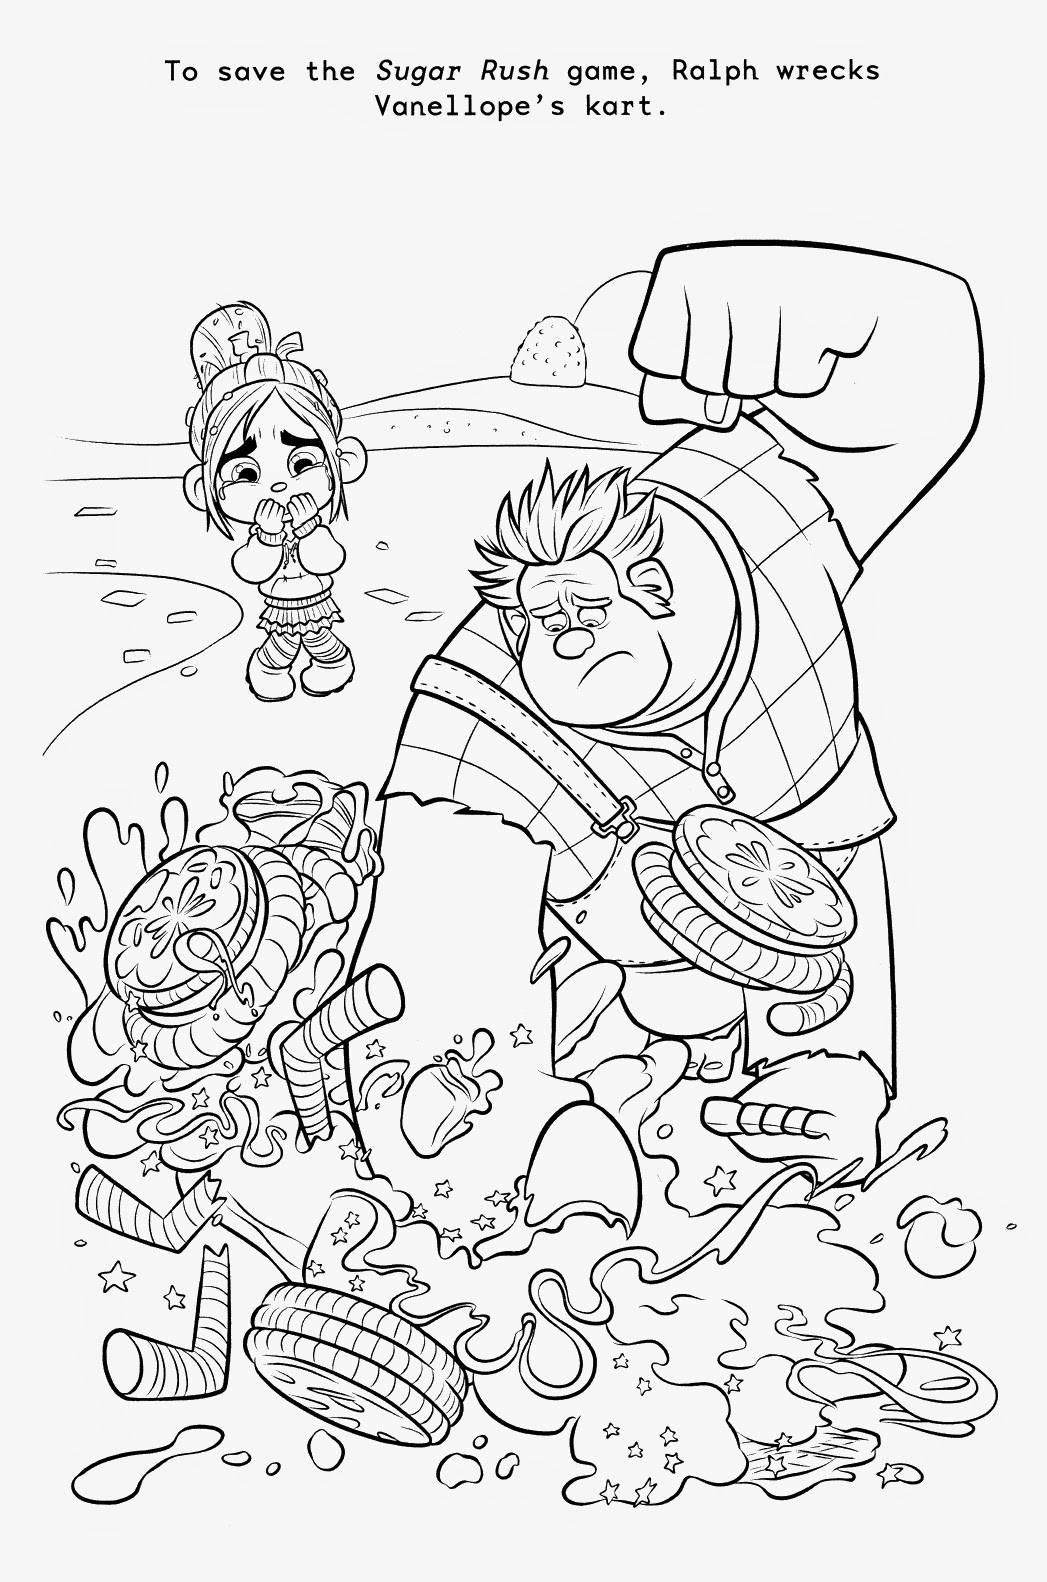 Snow White Coloring Page moreover T Baqxte furthermore Rkms Ip moreover Wall Breaker as well Valuable Idea Lol Dolls Coloring Pages Contemporary Decoration Fresh Printables Free. on queen coloring pages pictures to print and color